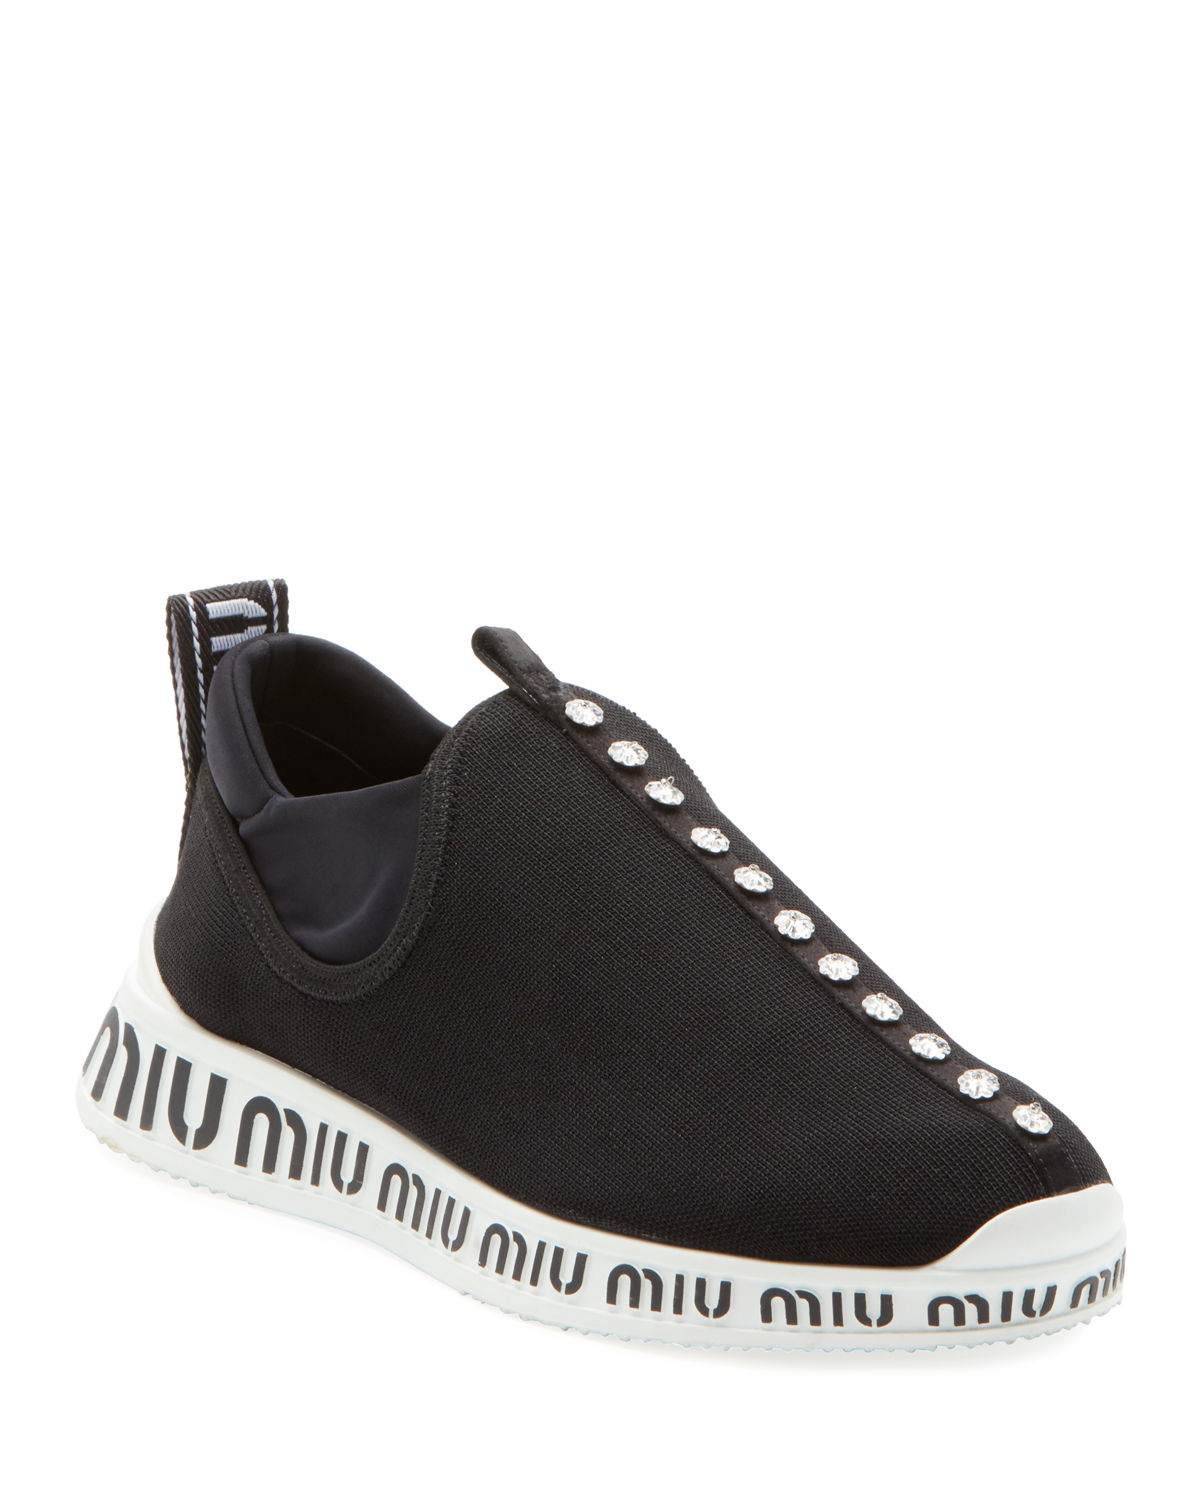 Jeweled Slip-On Trainer Sneakers